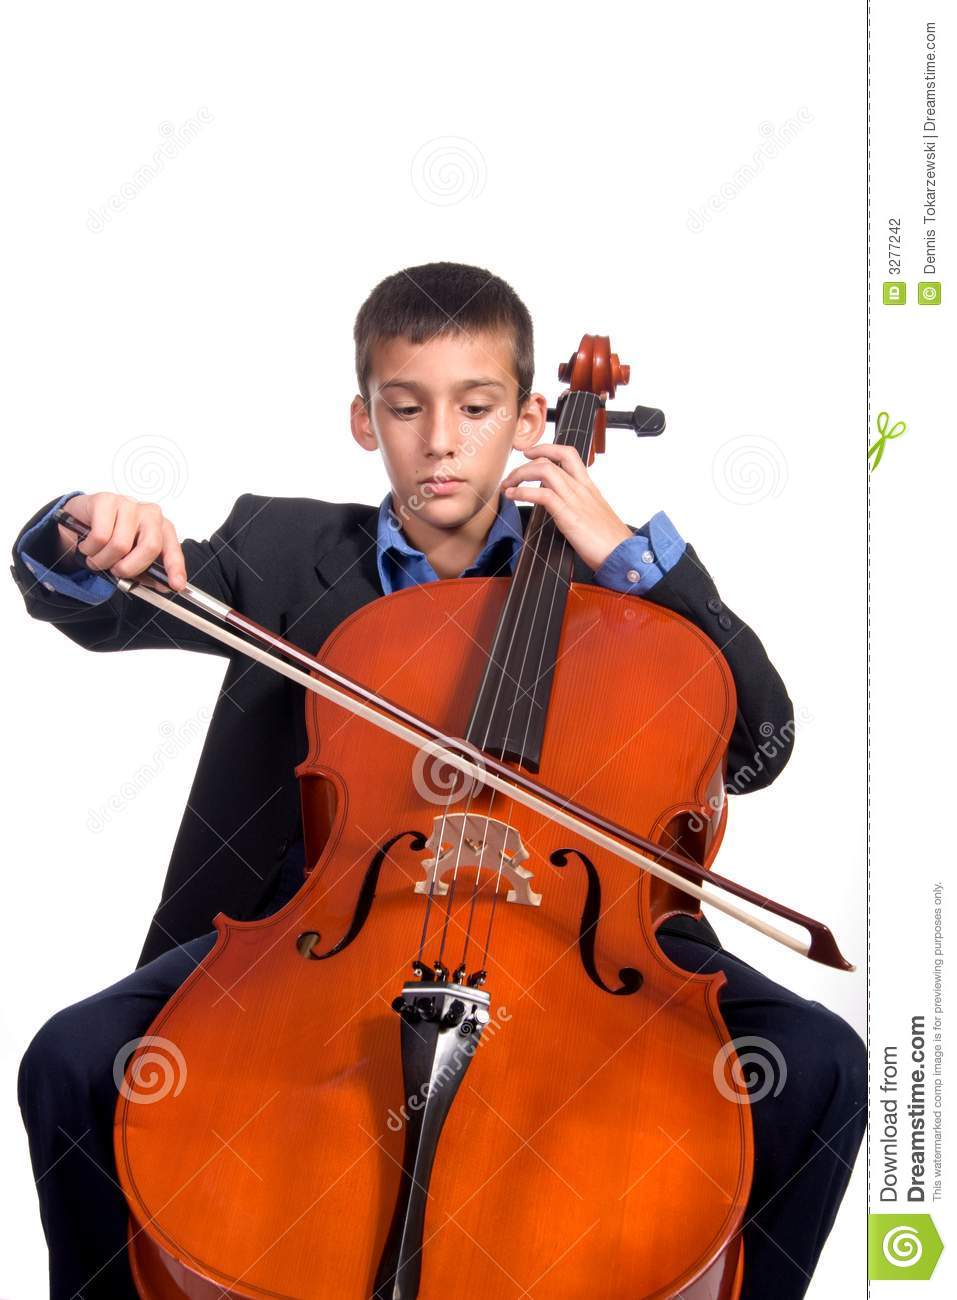 Young boy student practicing playing musical instrument Cello.